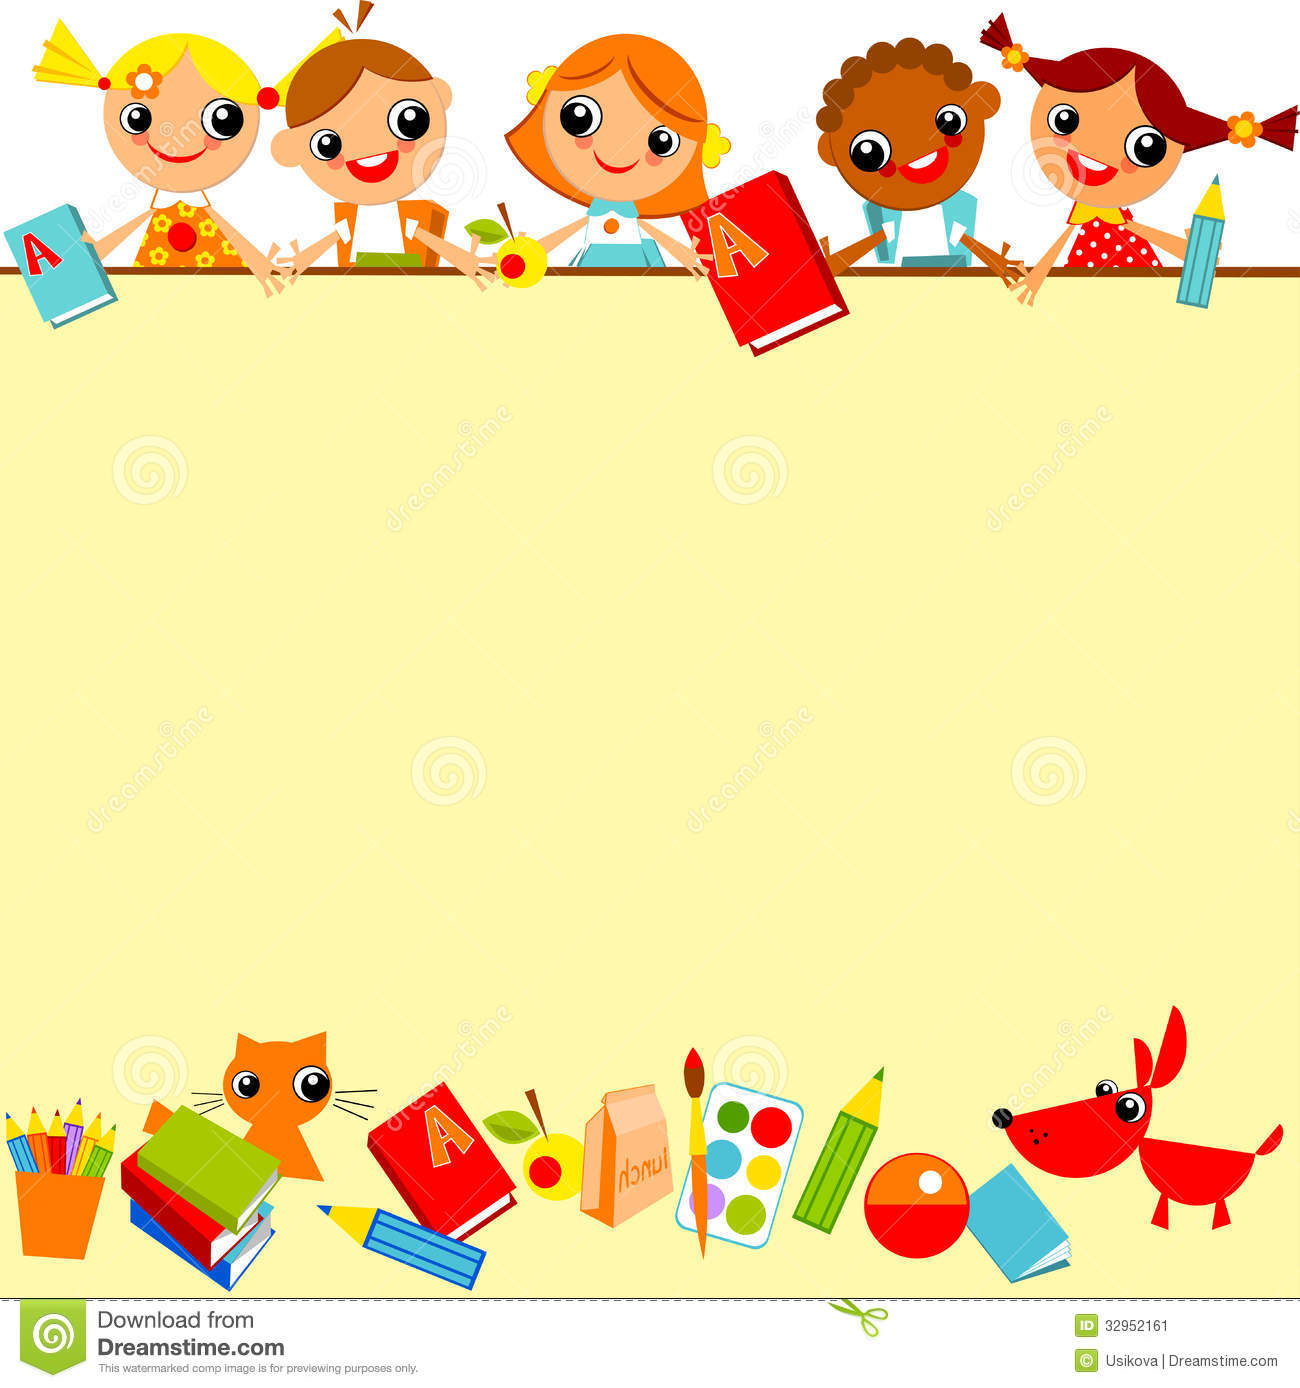 children background images wallpapersafari